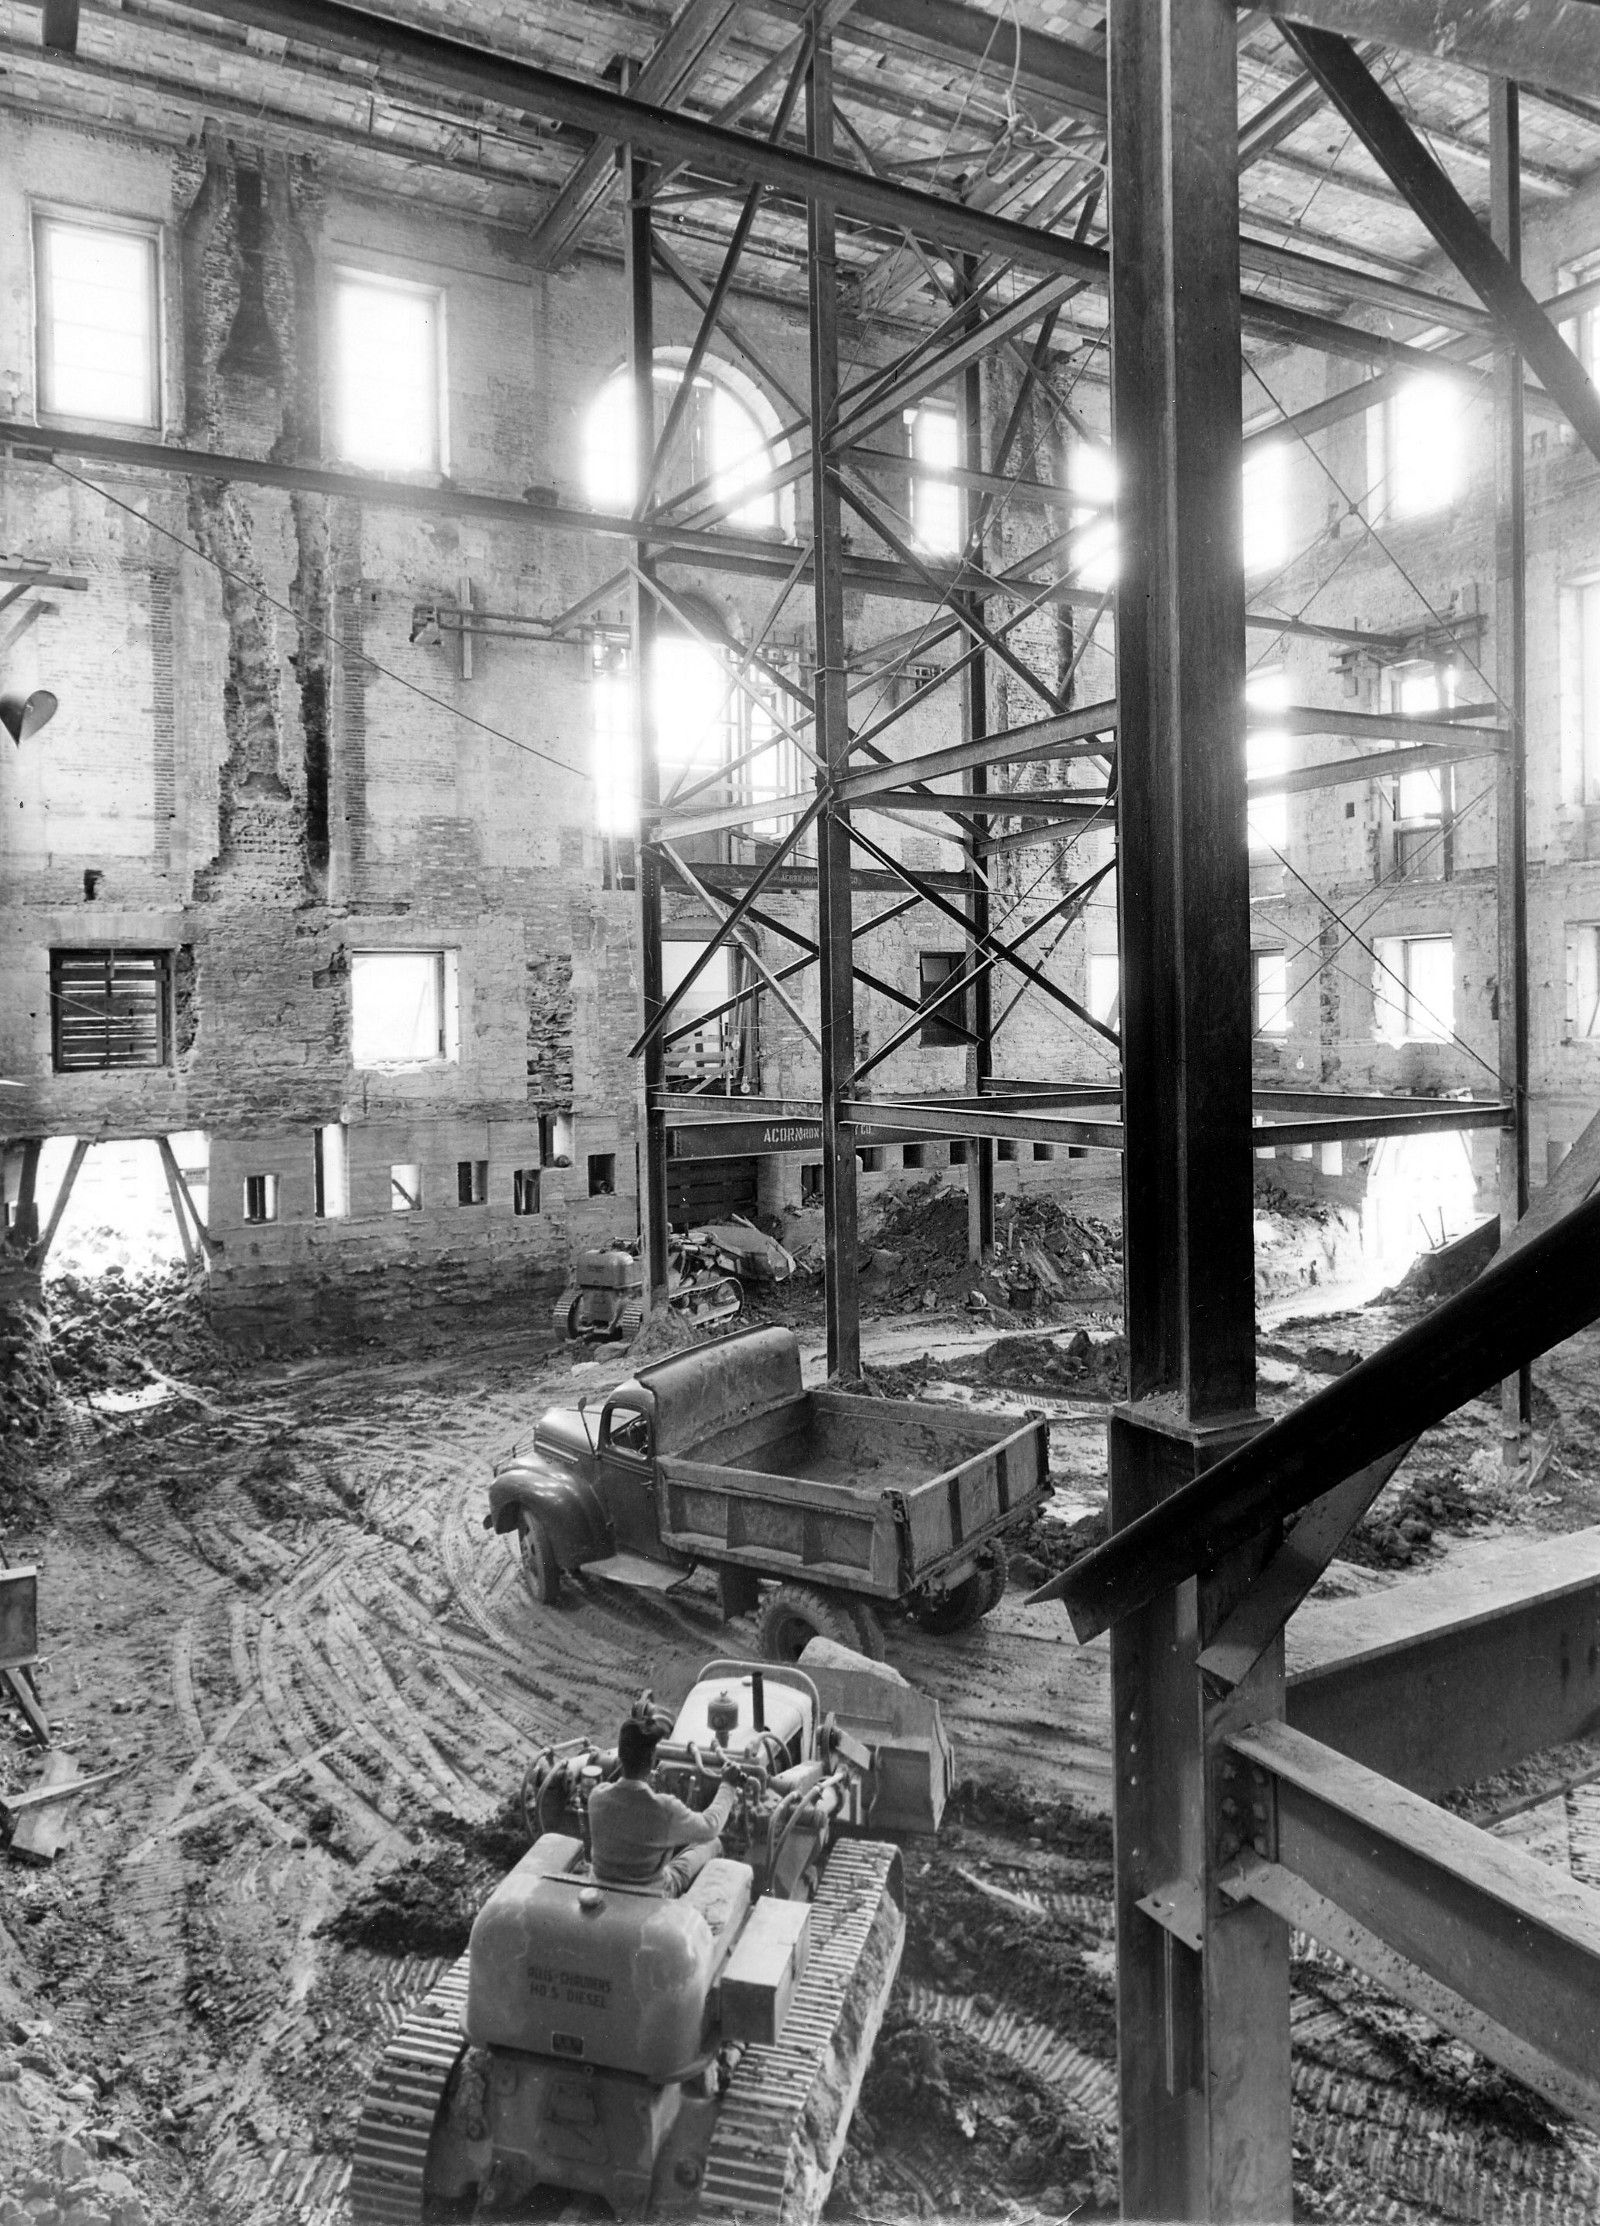 The White House, gutted